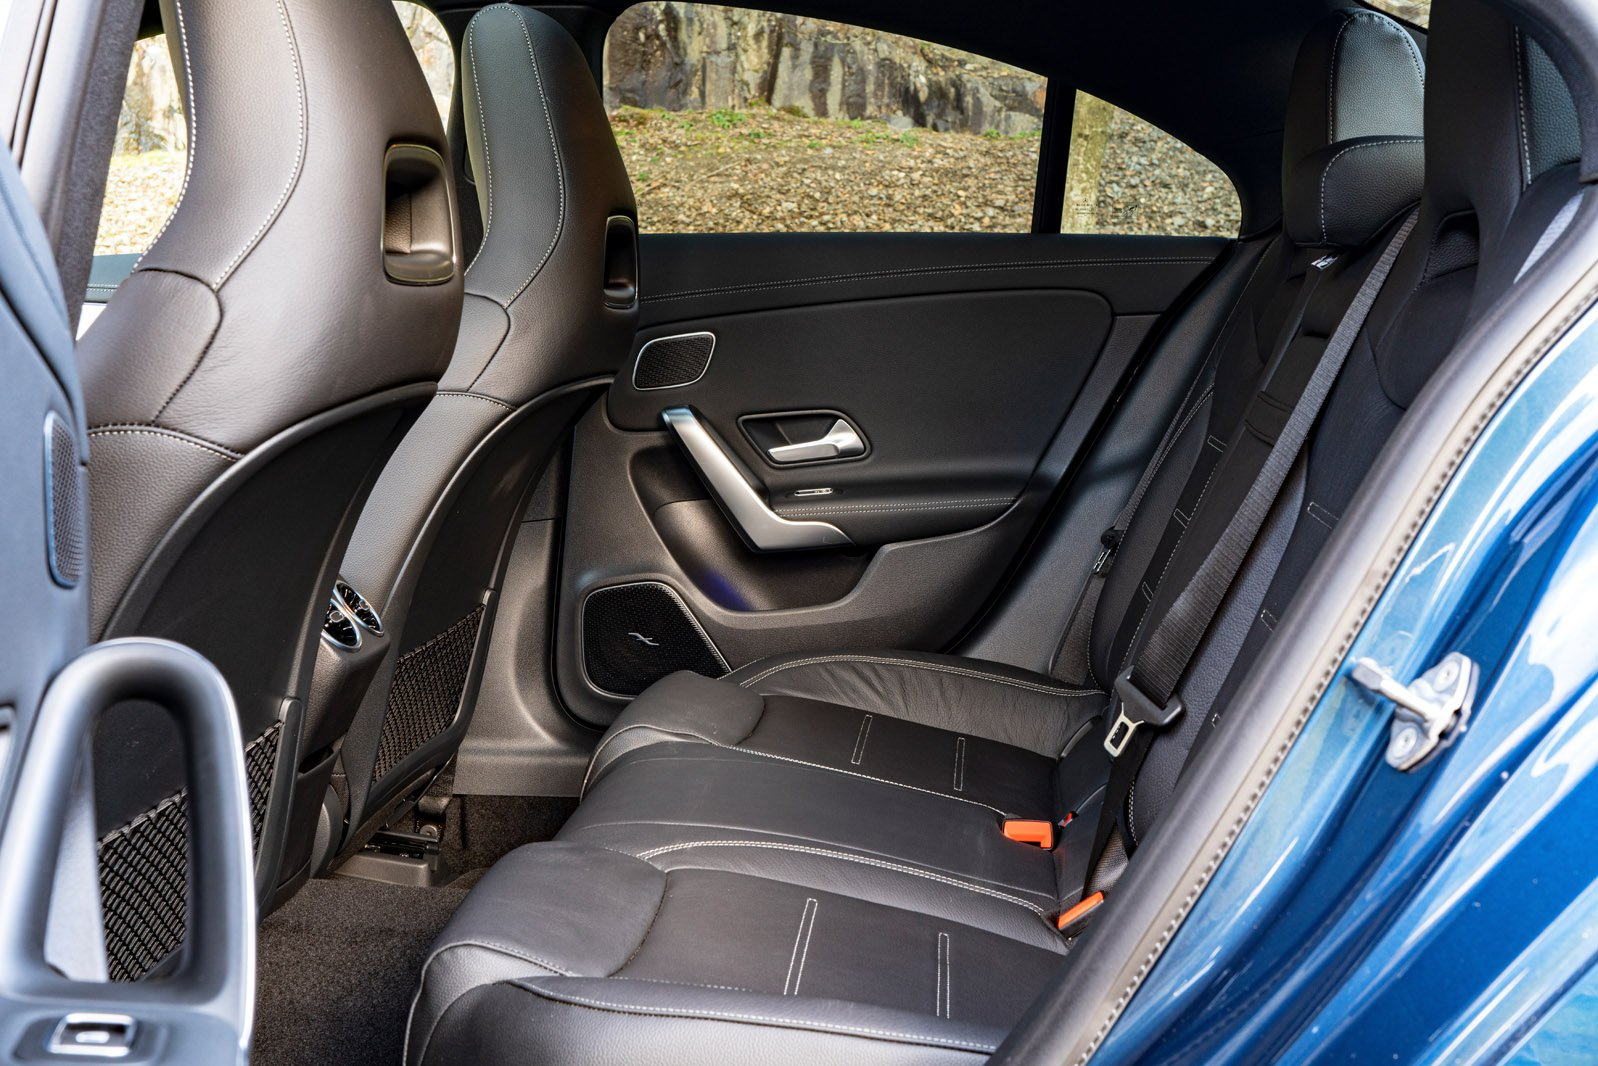 Mercedes CLA 35 AMG 2020 RHD rear seats